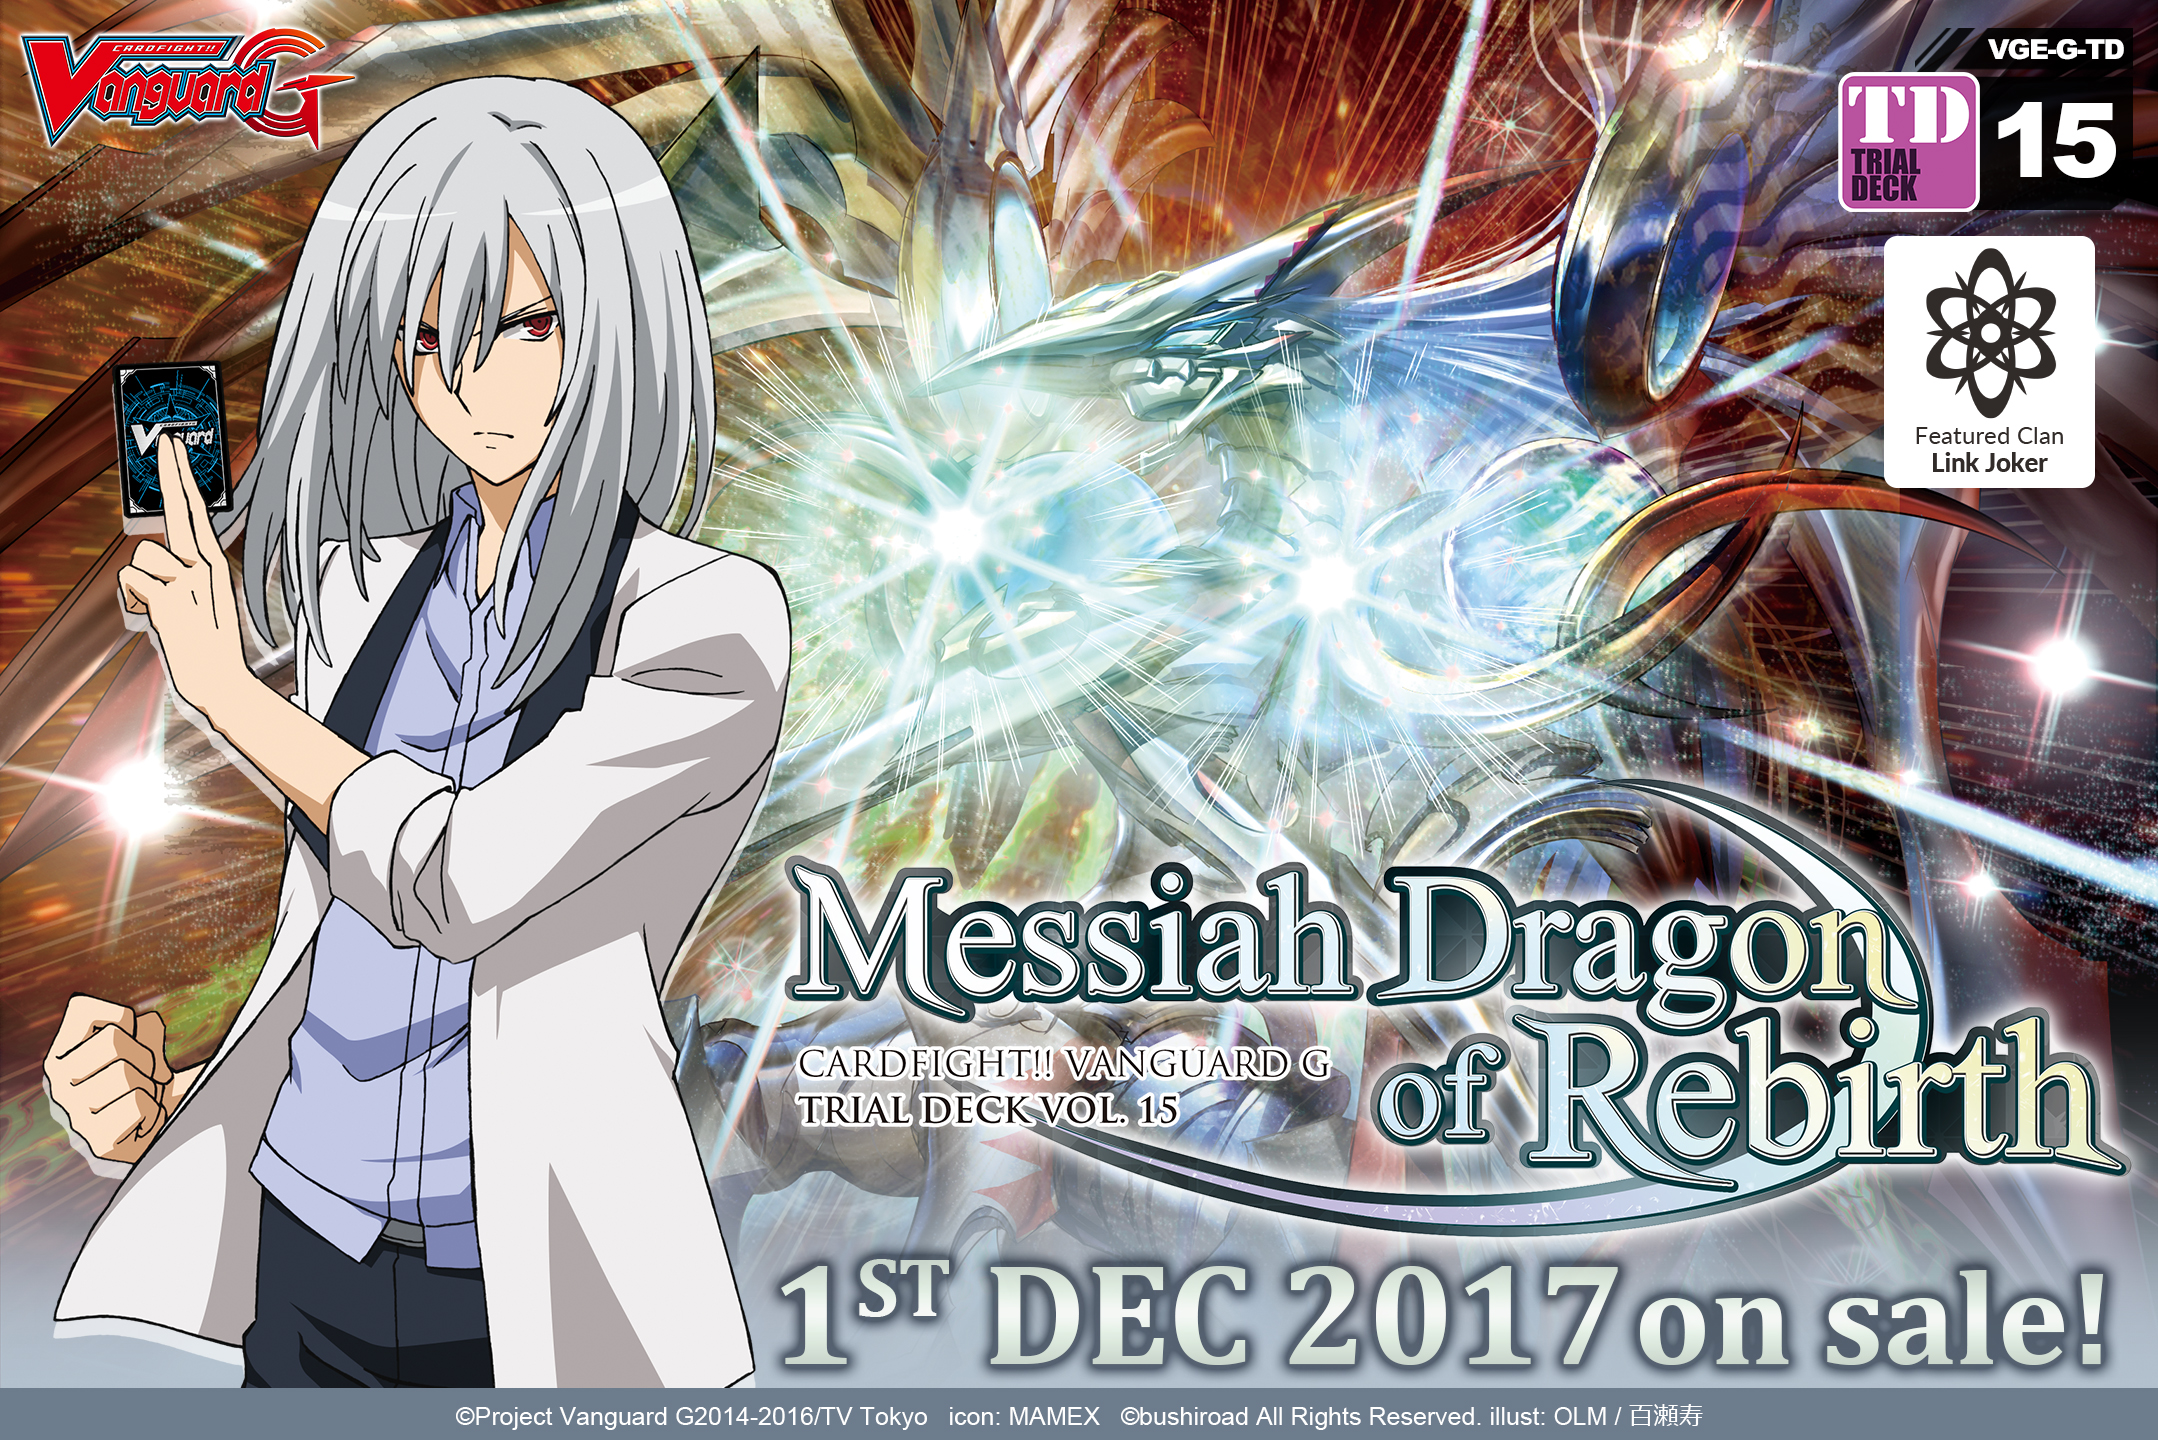 G Trial Deck Vol. 15: Messiah Dragon of Rebirth